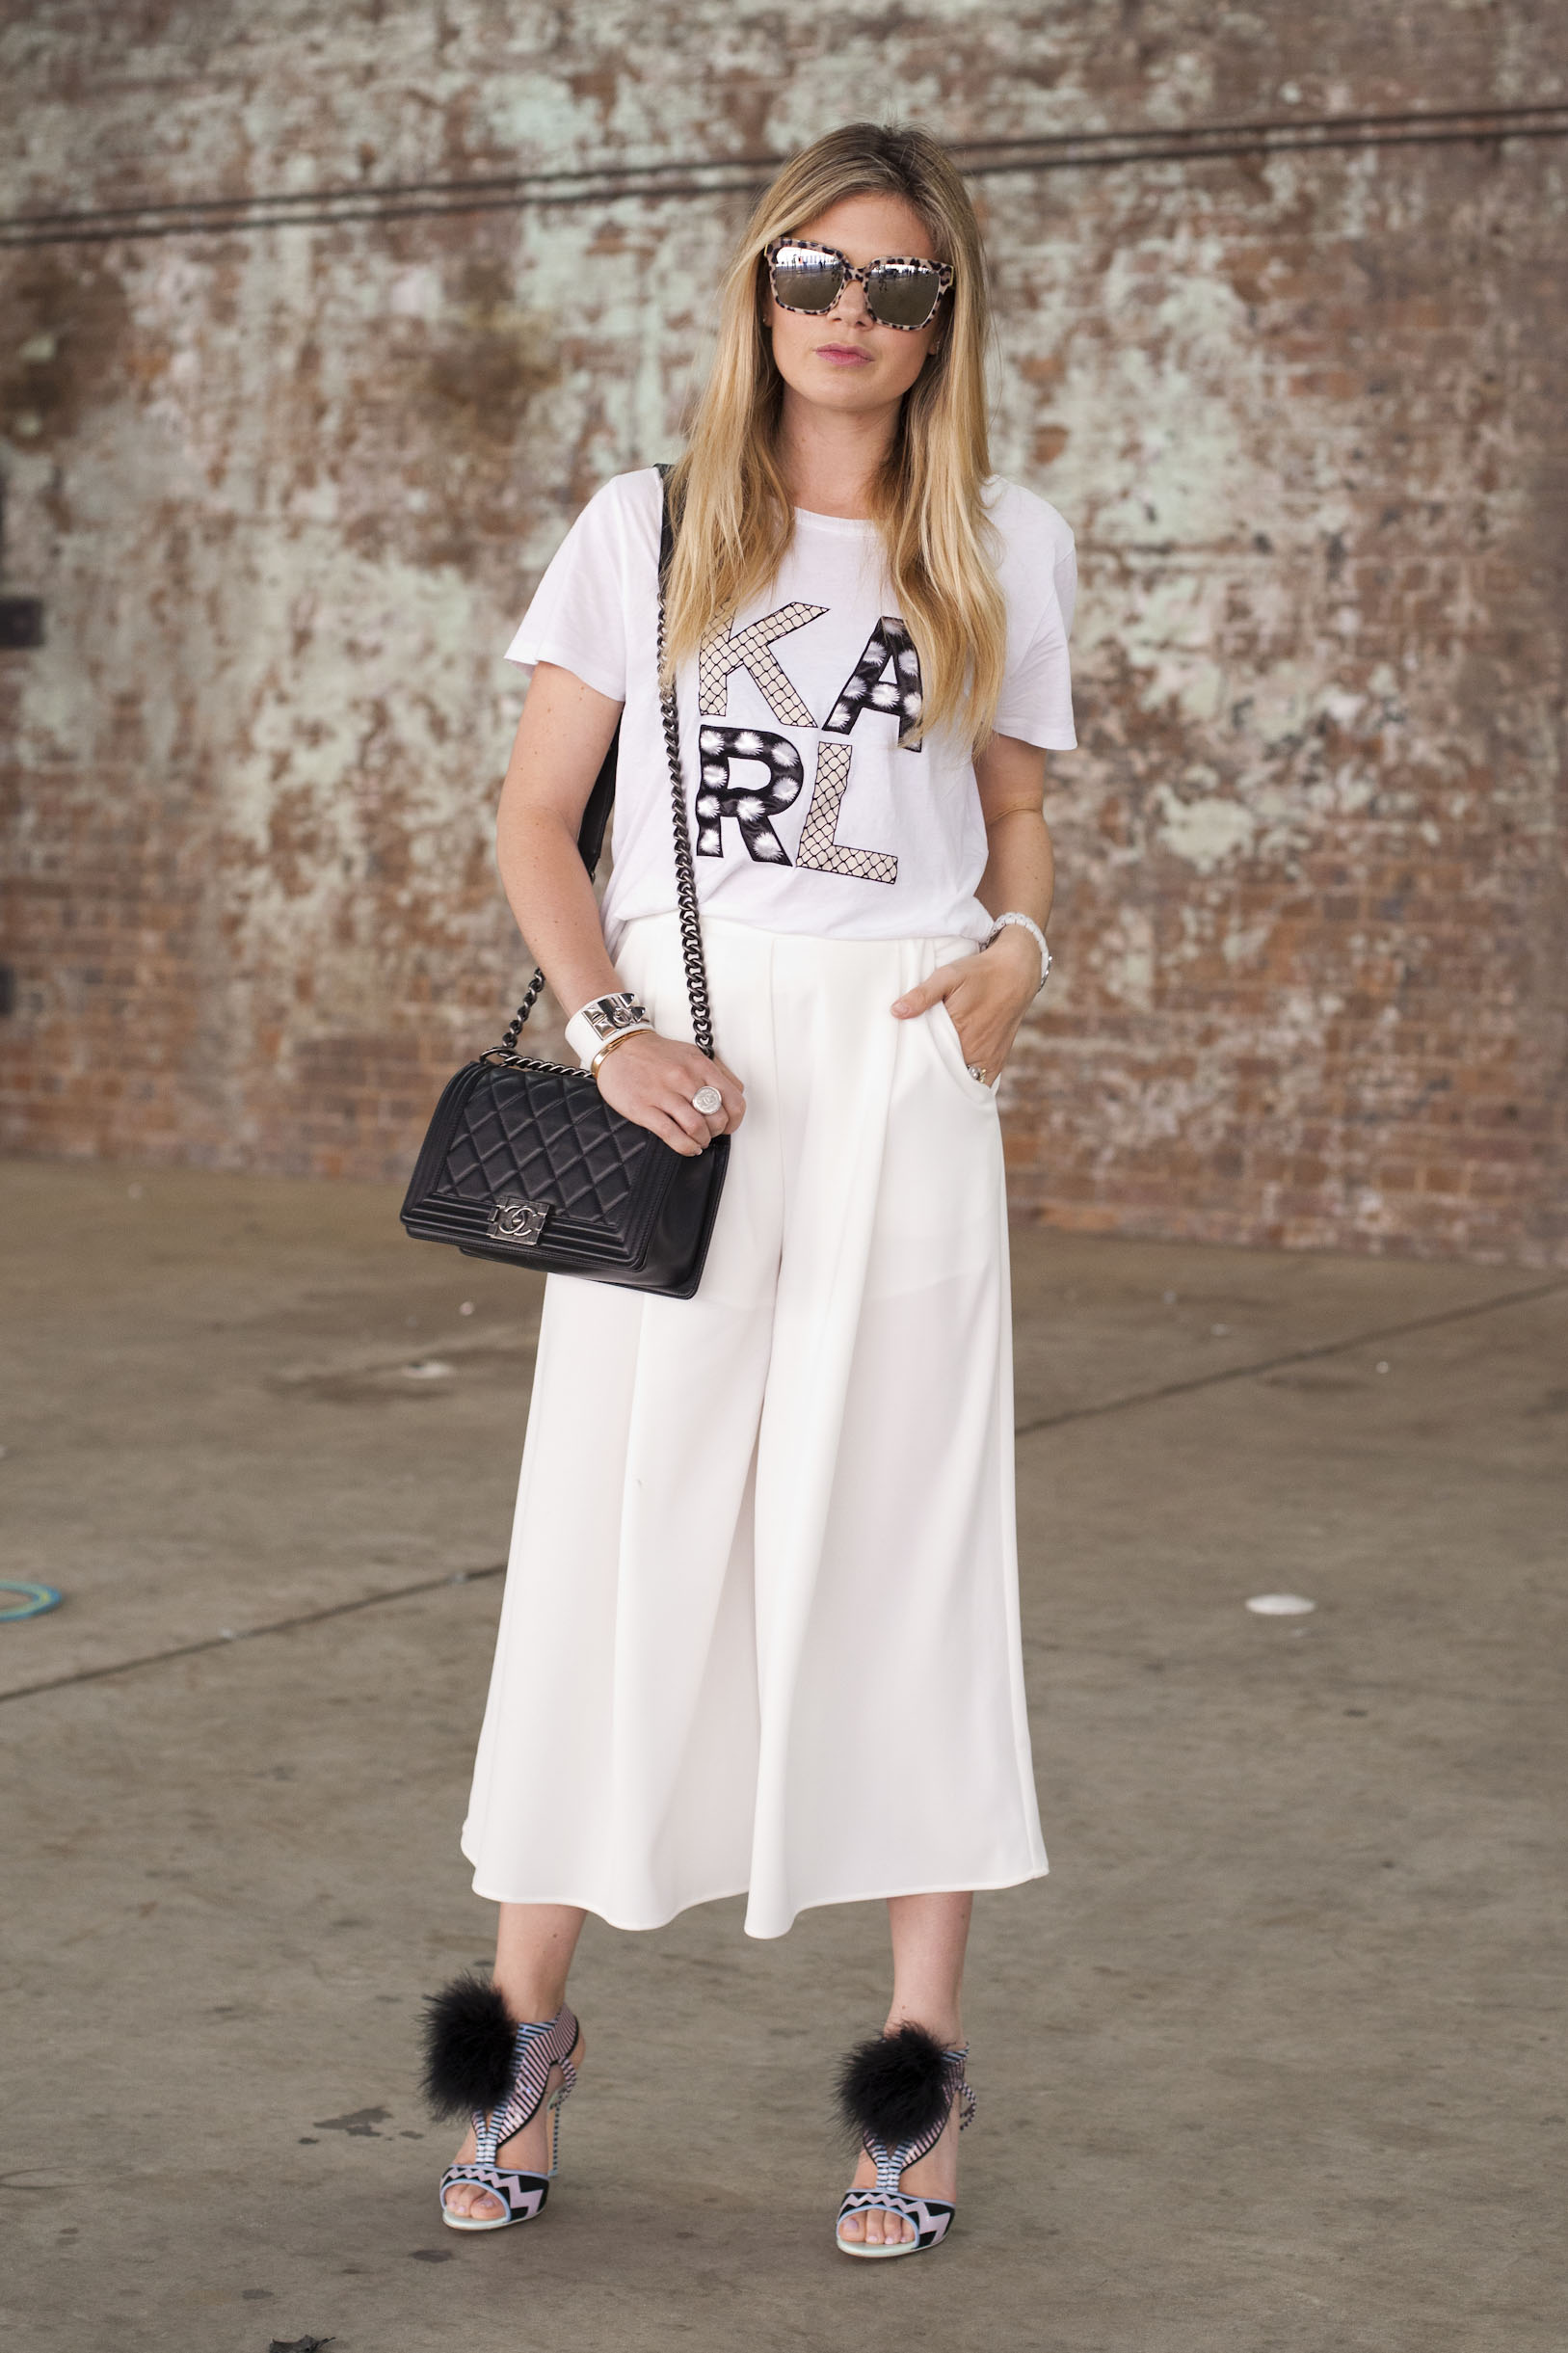 SYDNEY, AUSTRALIA - APRIL 14:  Fashion Blogger Jess Dempsey wears a Karl Lagerfeld shirt,The Fifth trousers, Chanel bag and Dolce and Gabbana sunglasses at Mercedes-Benz Fashion Week Australia 2015 at Carriageworks on April 14, 2015 in Sydney, Australia.  (Photo by Merilyn Smith/WireImage)